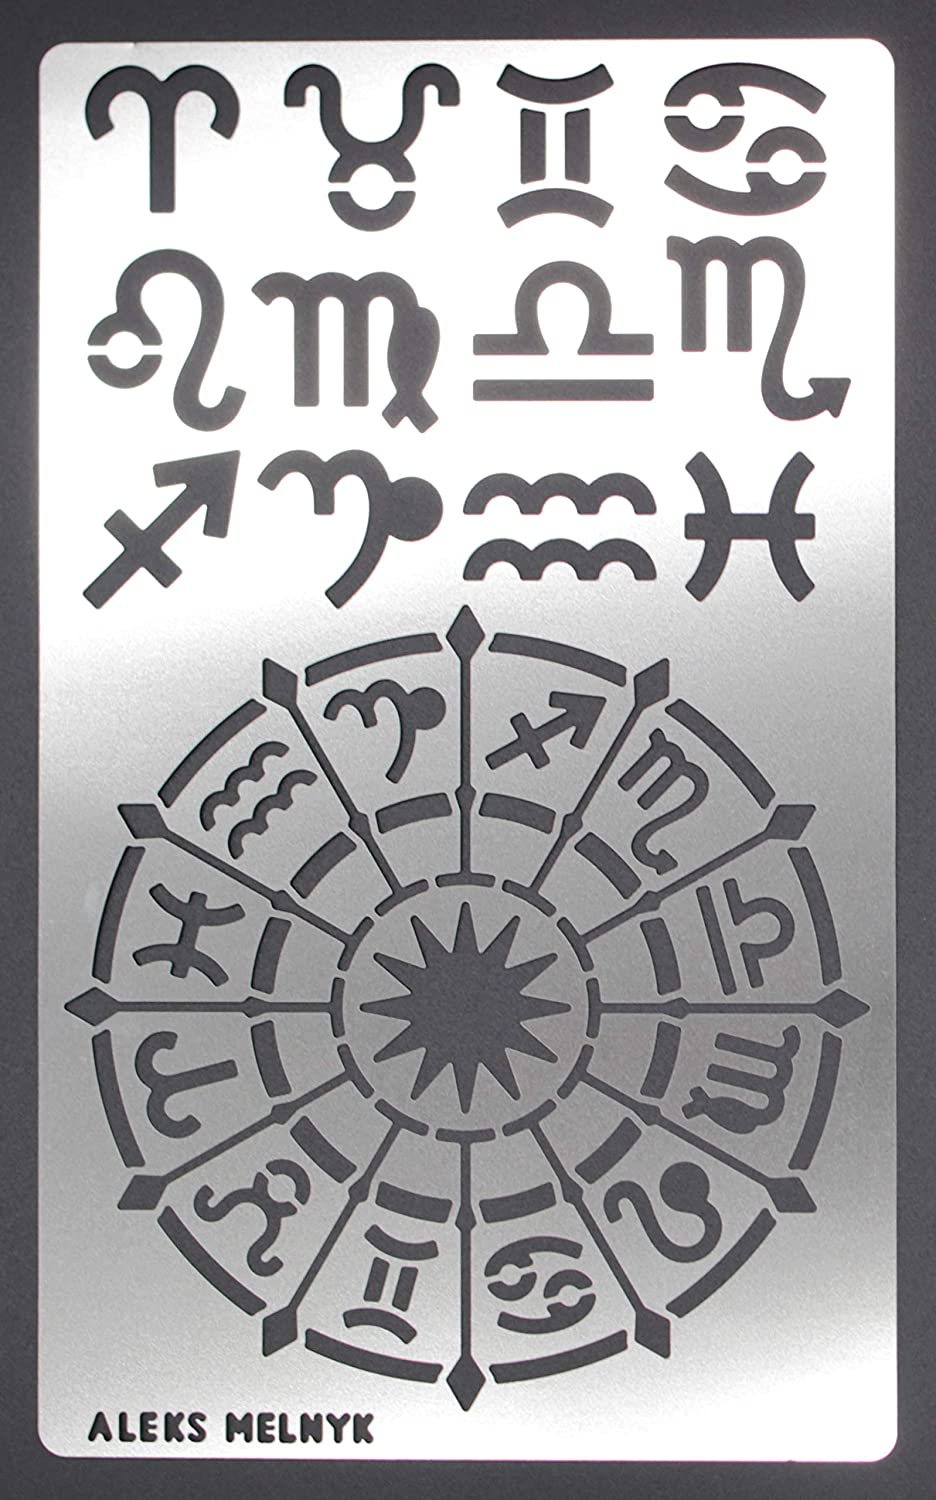 Aleks Melnyk #29a Metal Stencil/Witchy Grimoire, Zodiac Glyphs Symbols/Stainless Steel Stencil 1 PCS/Template Tool for Wood Burning, Pyrography and Engraving/Crafting/DIY